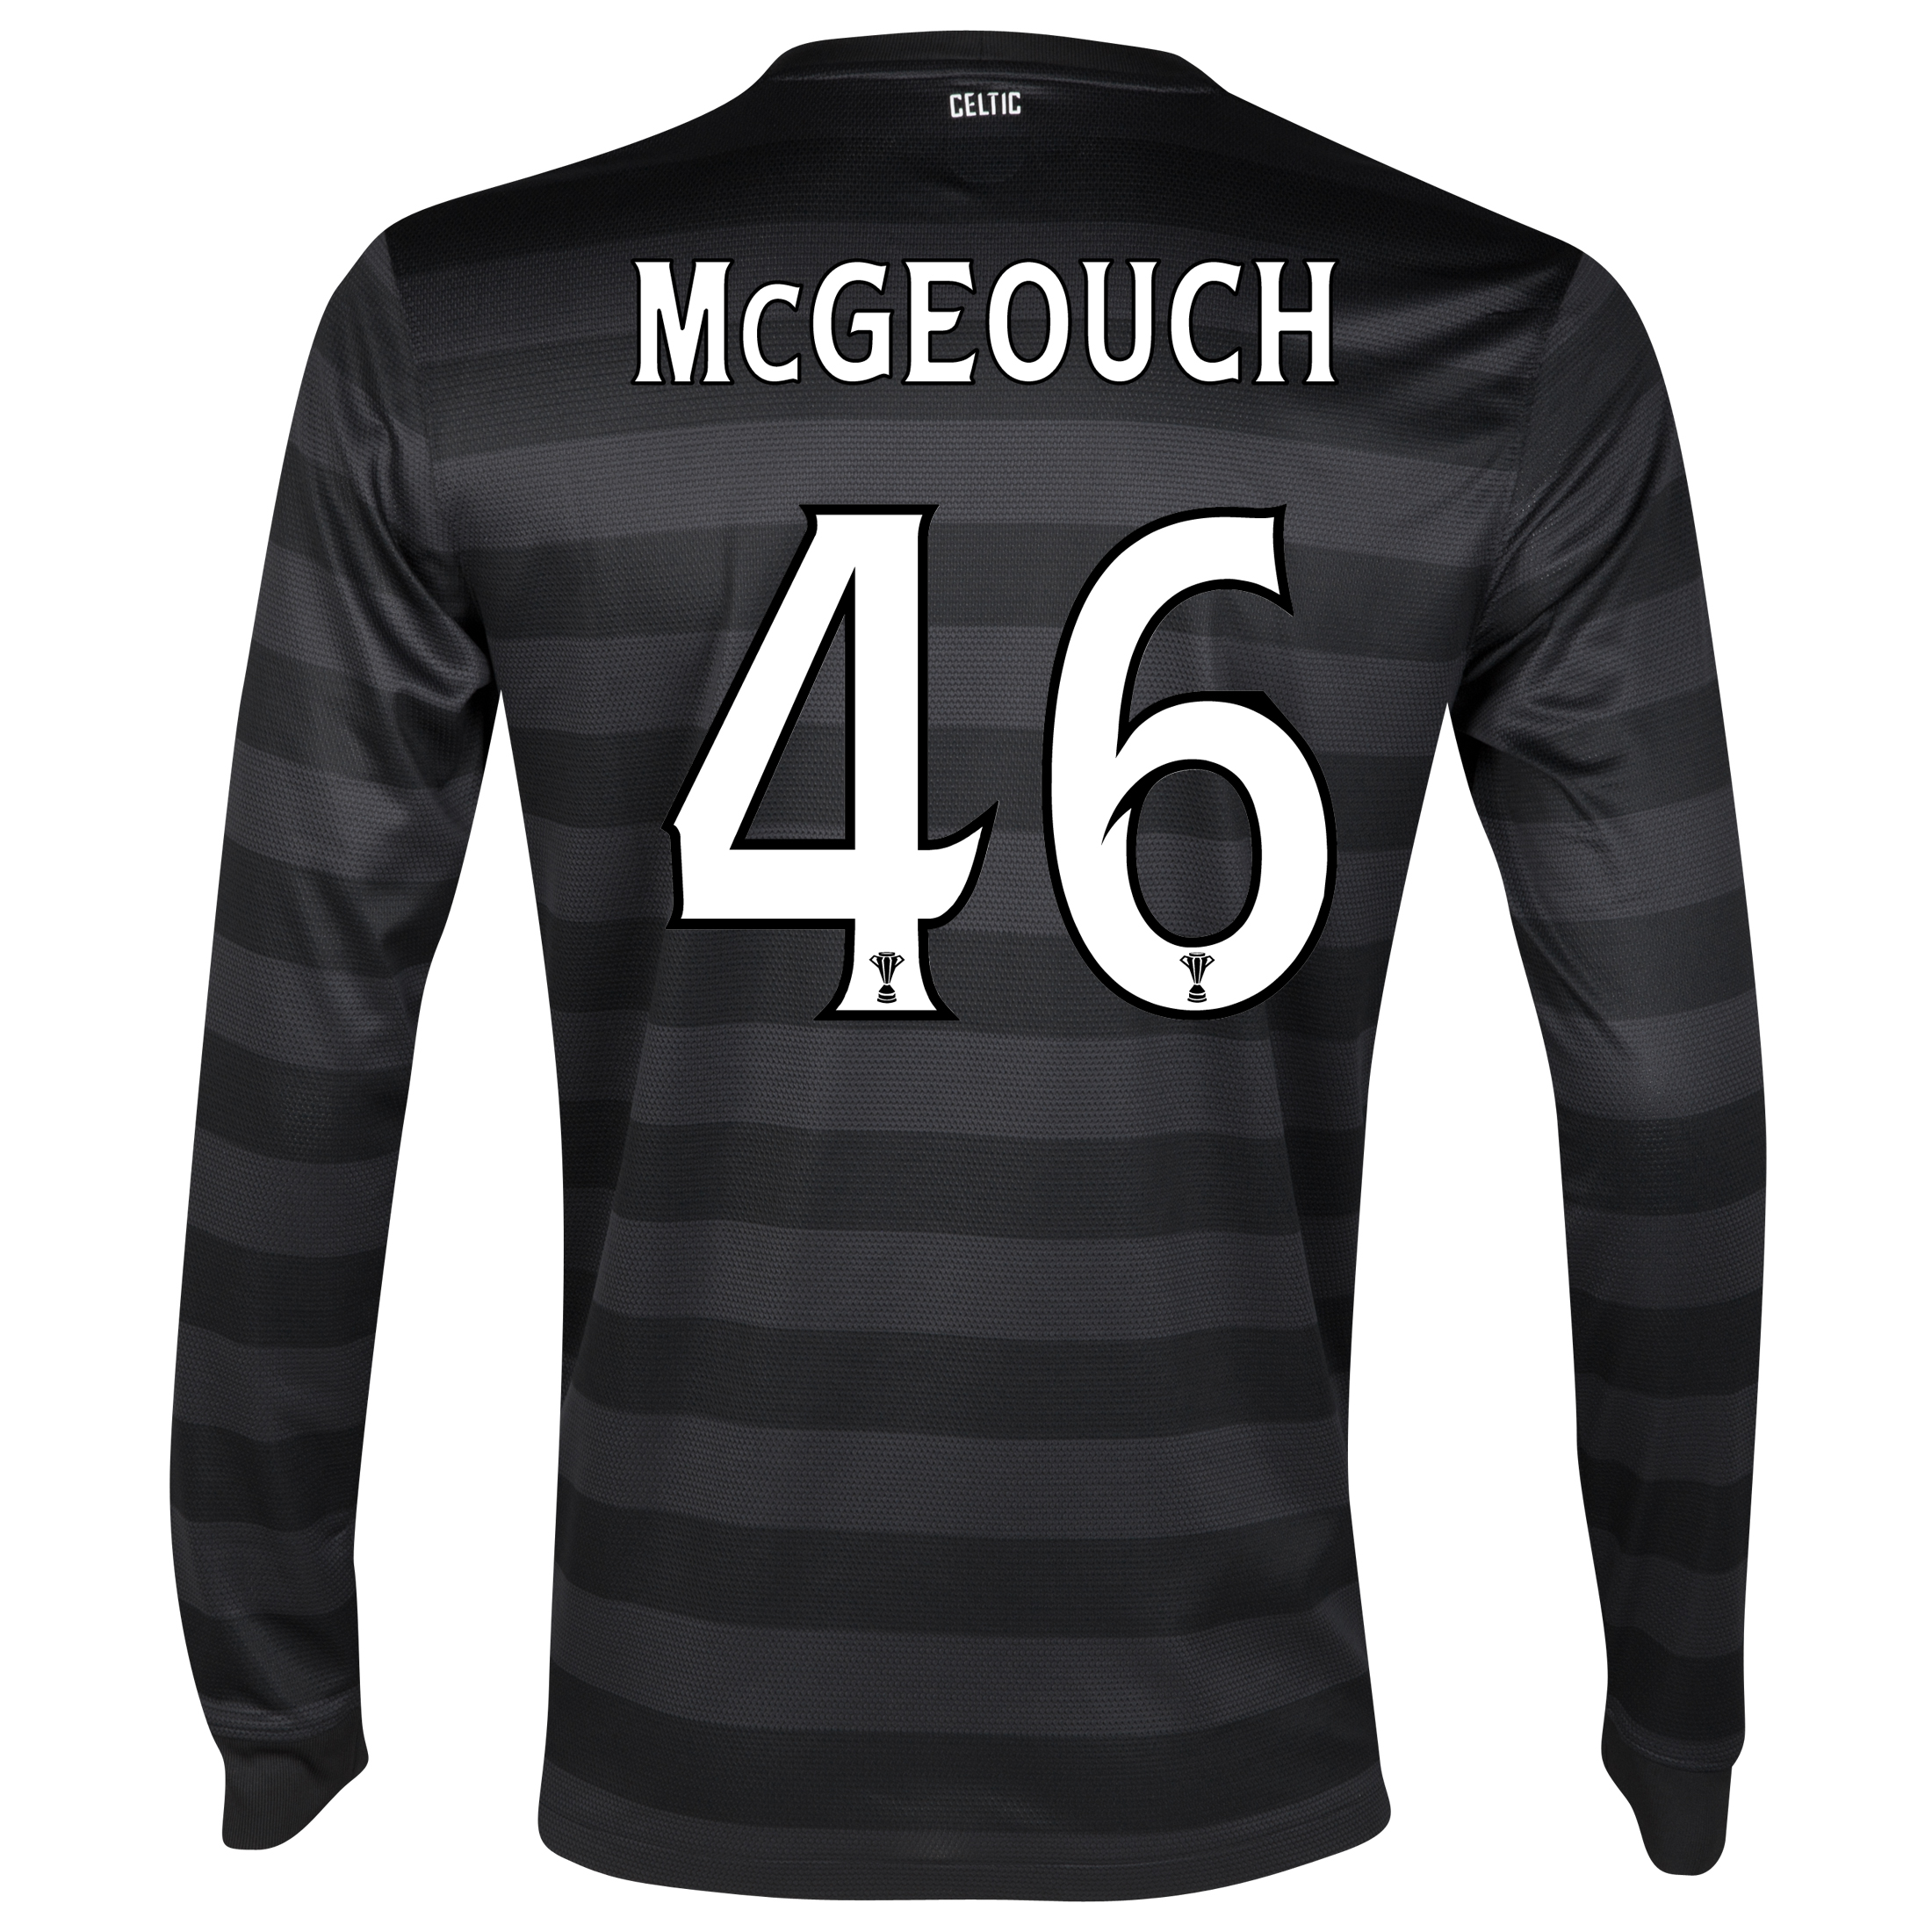 Celtic Away Shirt 2012/13 - Long Sleeved no sponsor with McGeouch  46 printing